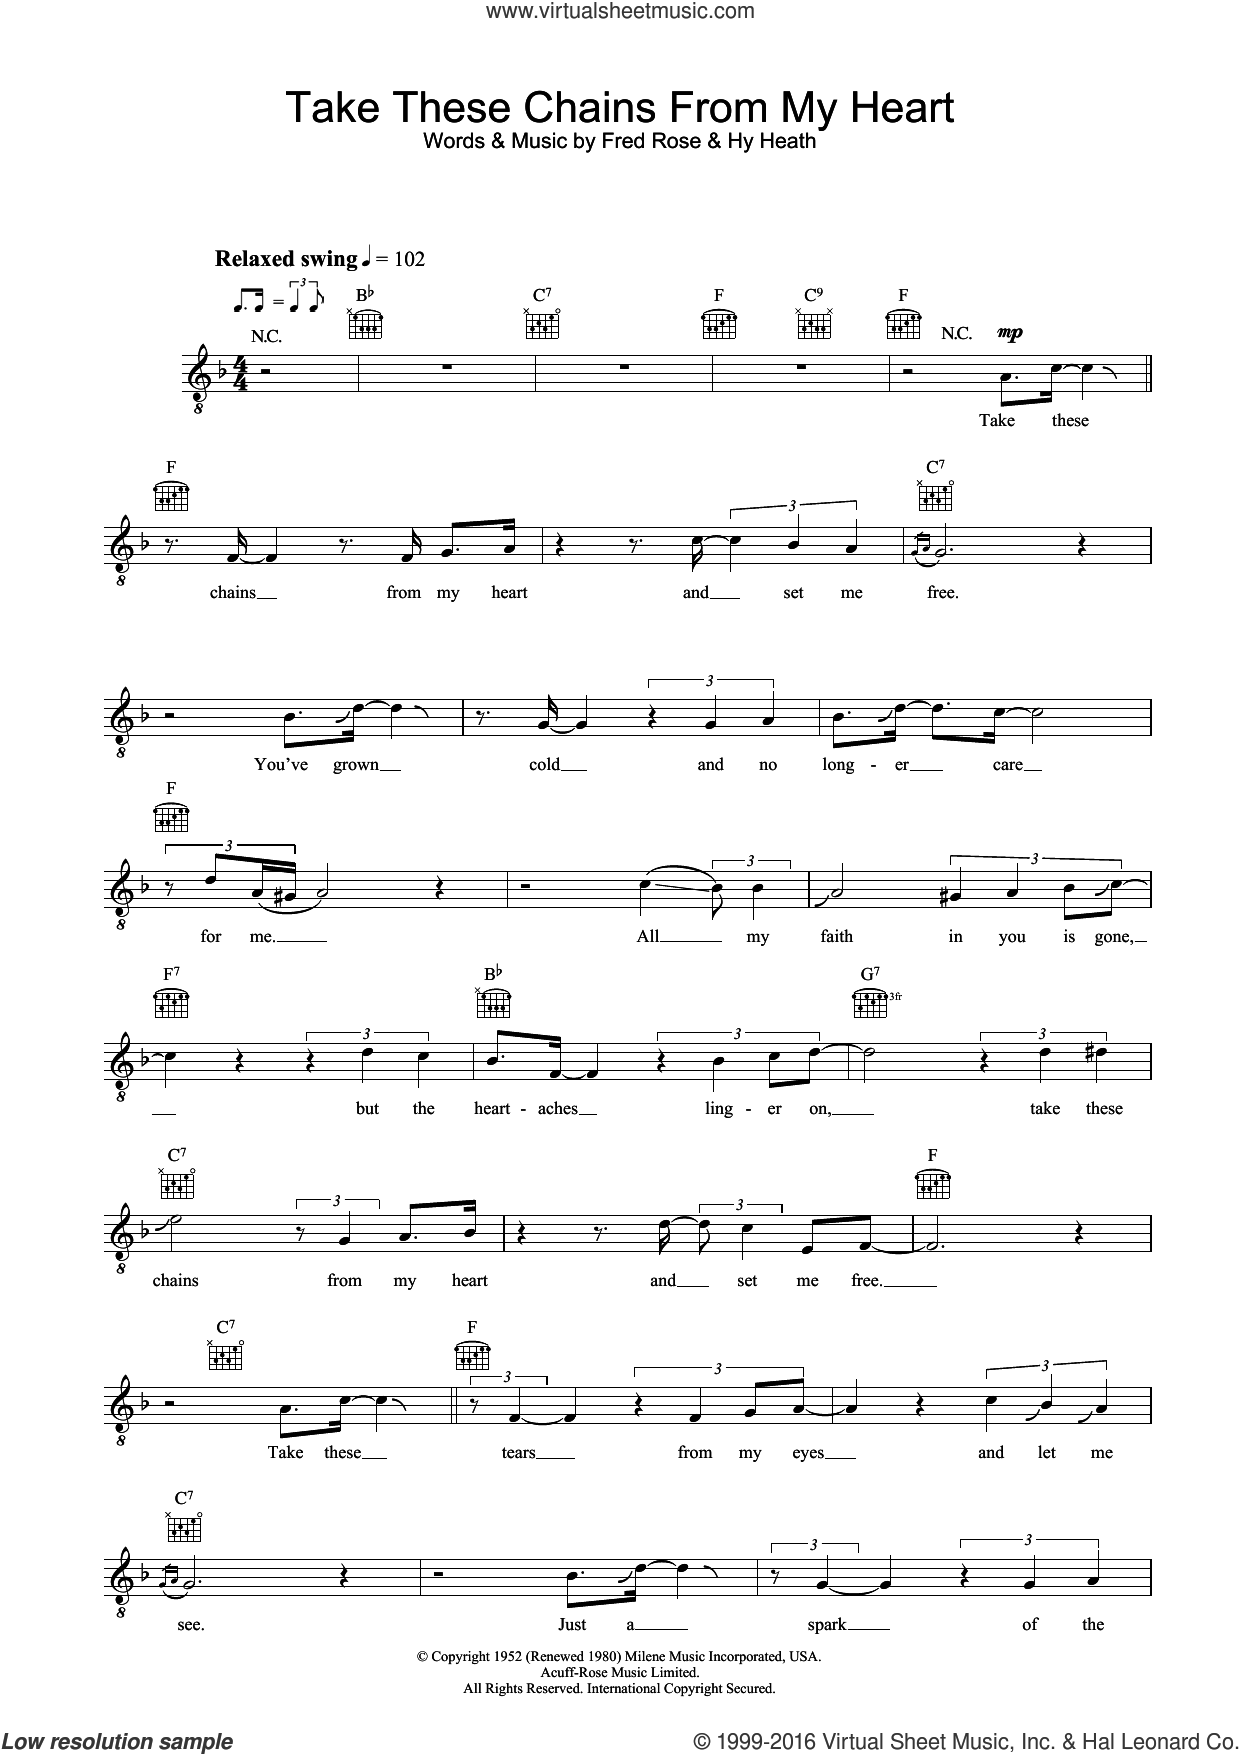 Take These Chains From My Heart sheet music for voice and other instruments (fake book) by Ray Charles, Fred Rose and Hy Heath, intermediate skill level